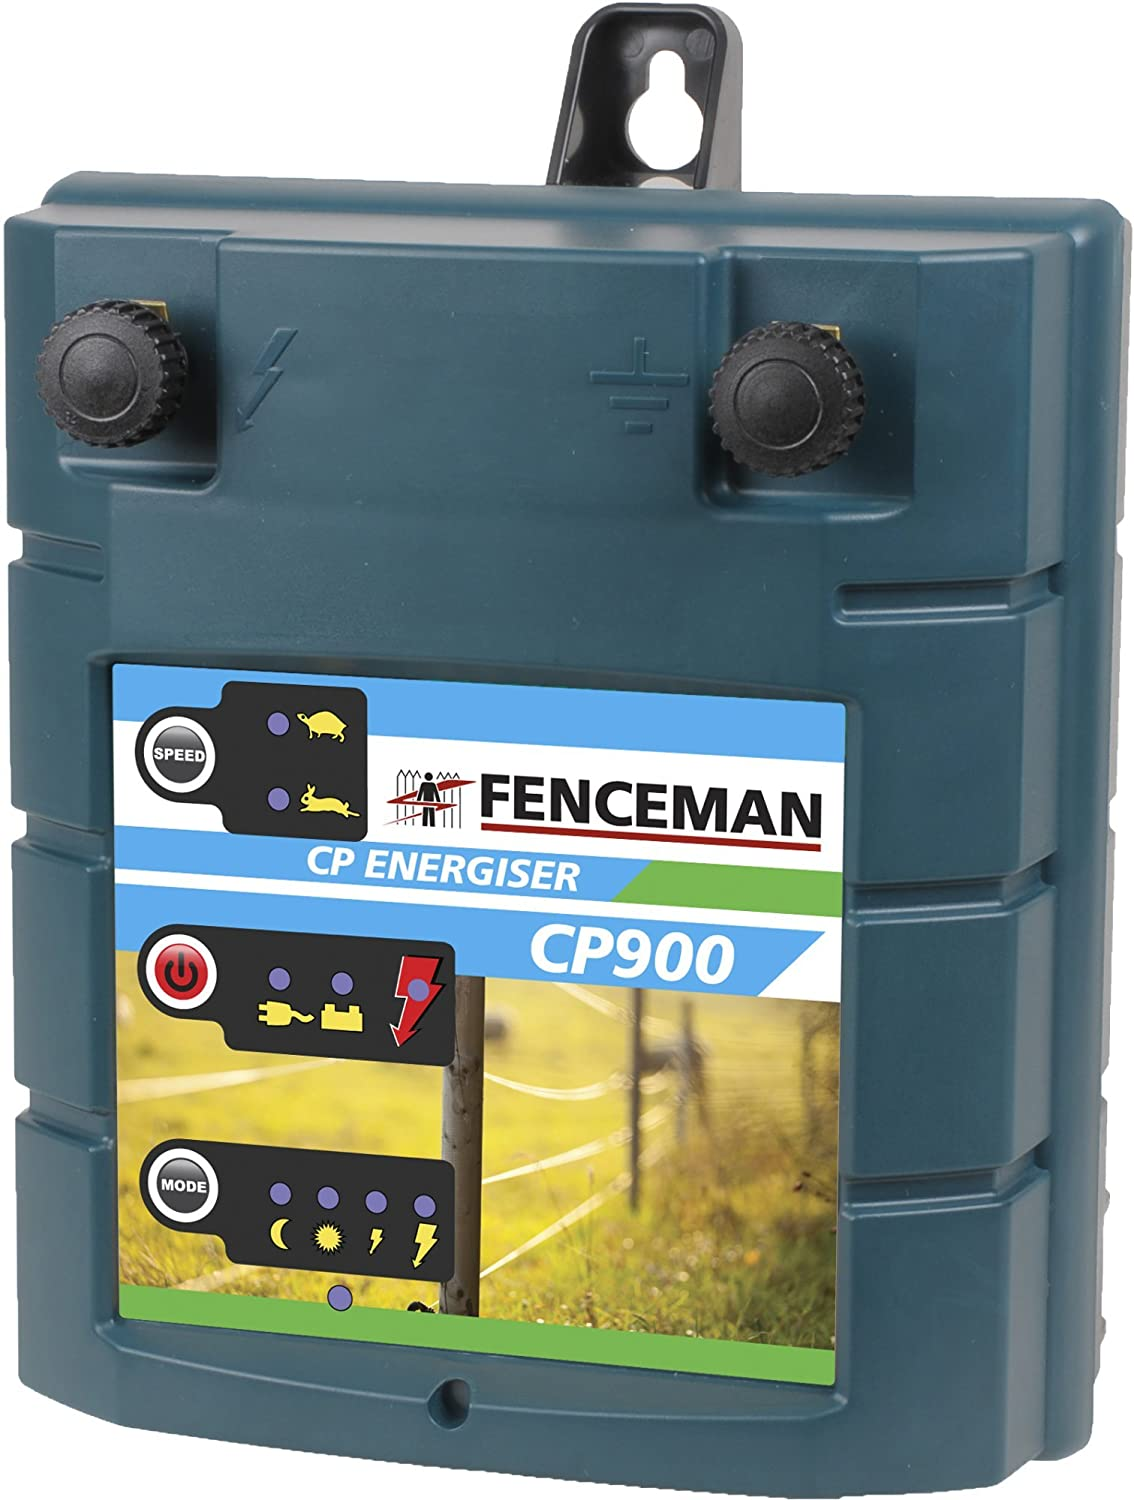 Fenceman Cp900 Electric Fence Battery Energiser Mains Powered Energizers Sports Outdoors